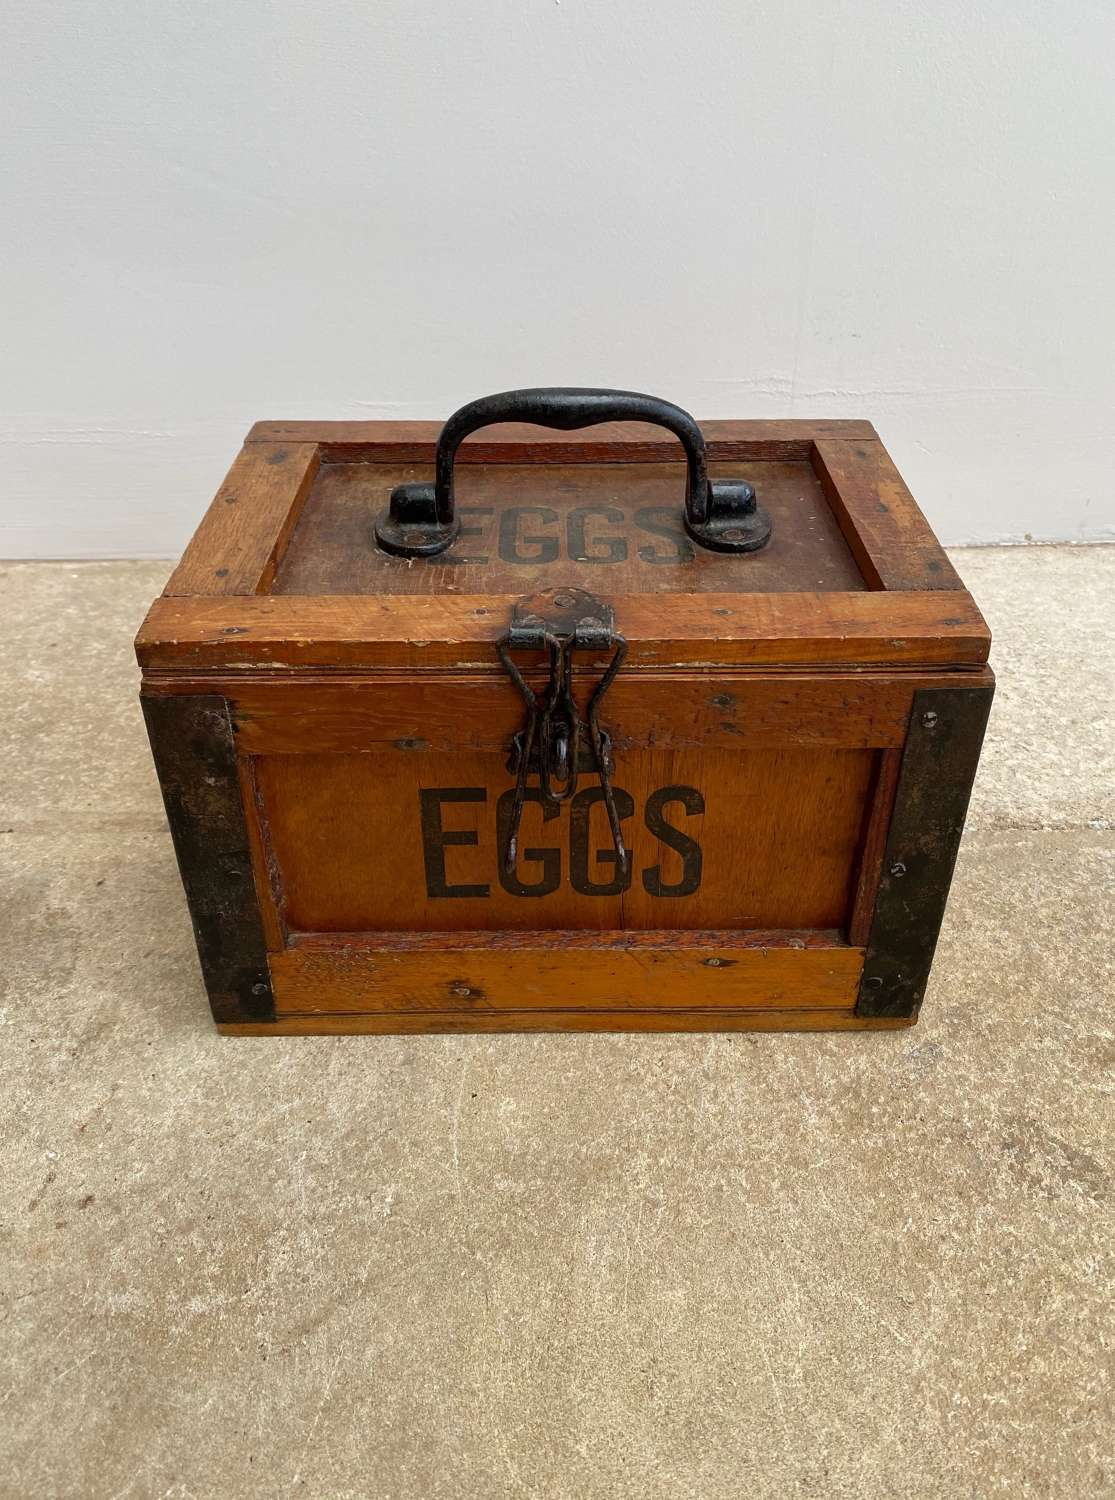 Early 20th Century Travelling Eggs Box - Metal Bound